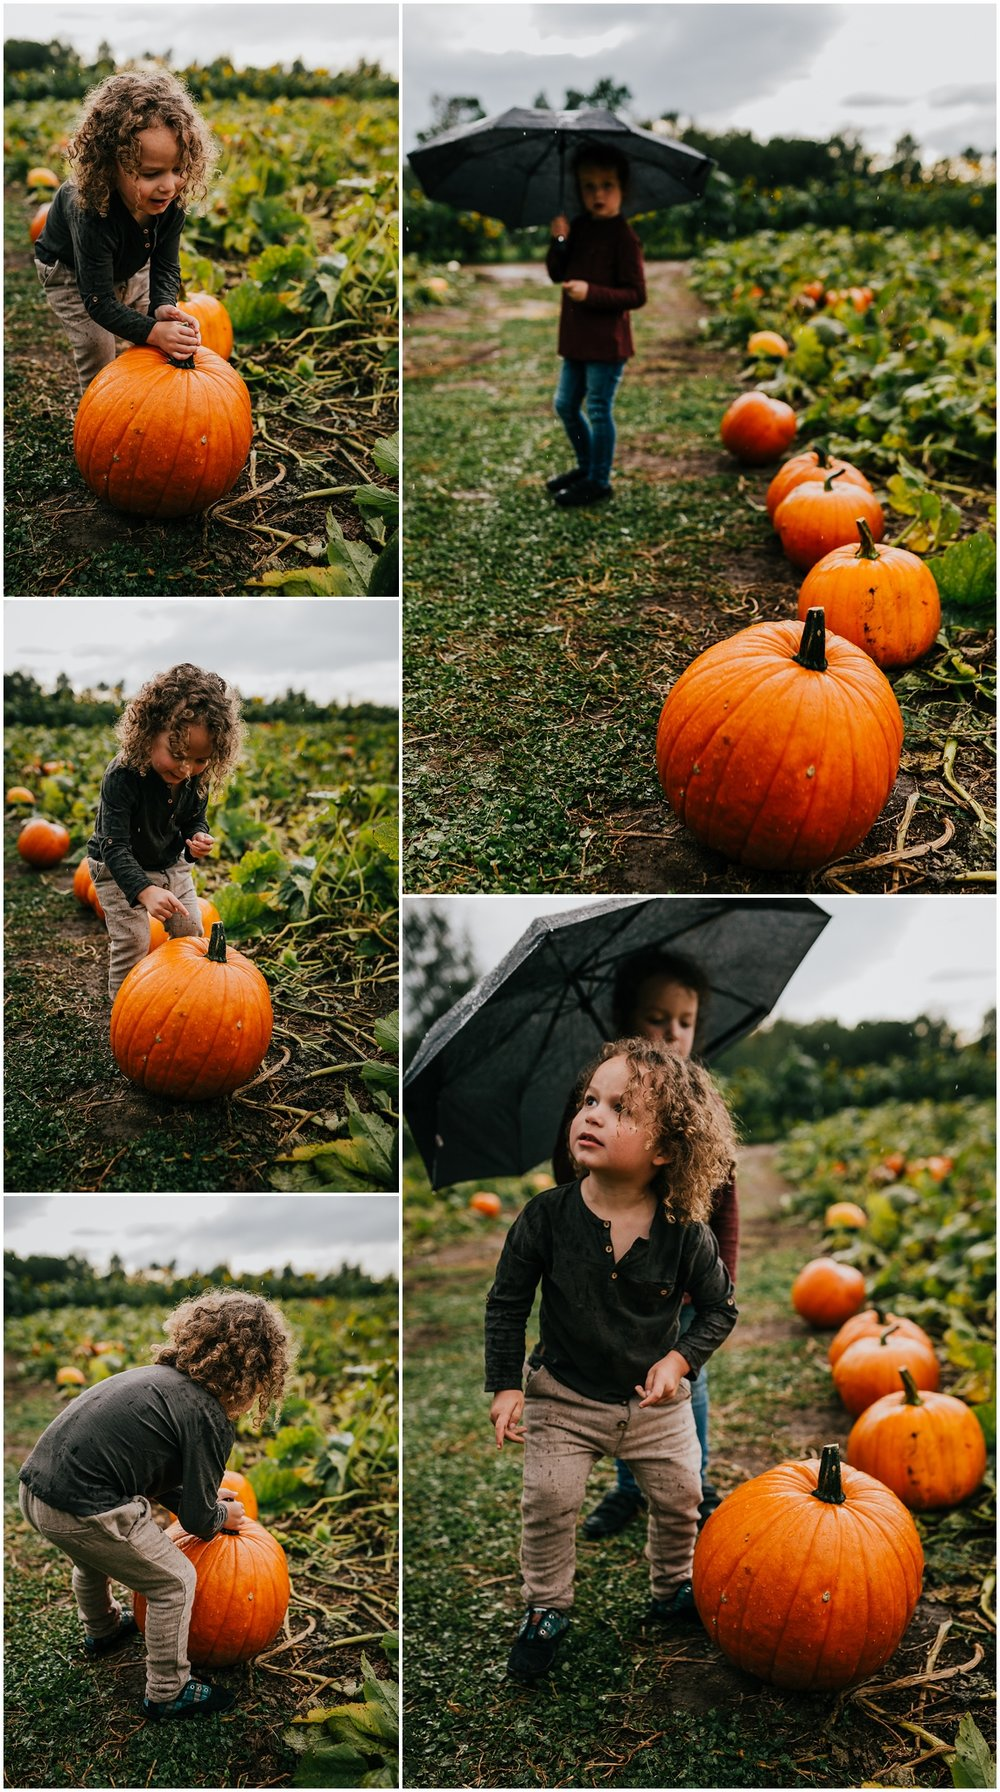 Treelines Photography - Edmonton Family Photographer - U-Pick Pumpkins - Halloween Edmonton